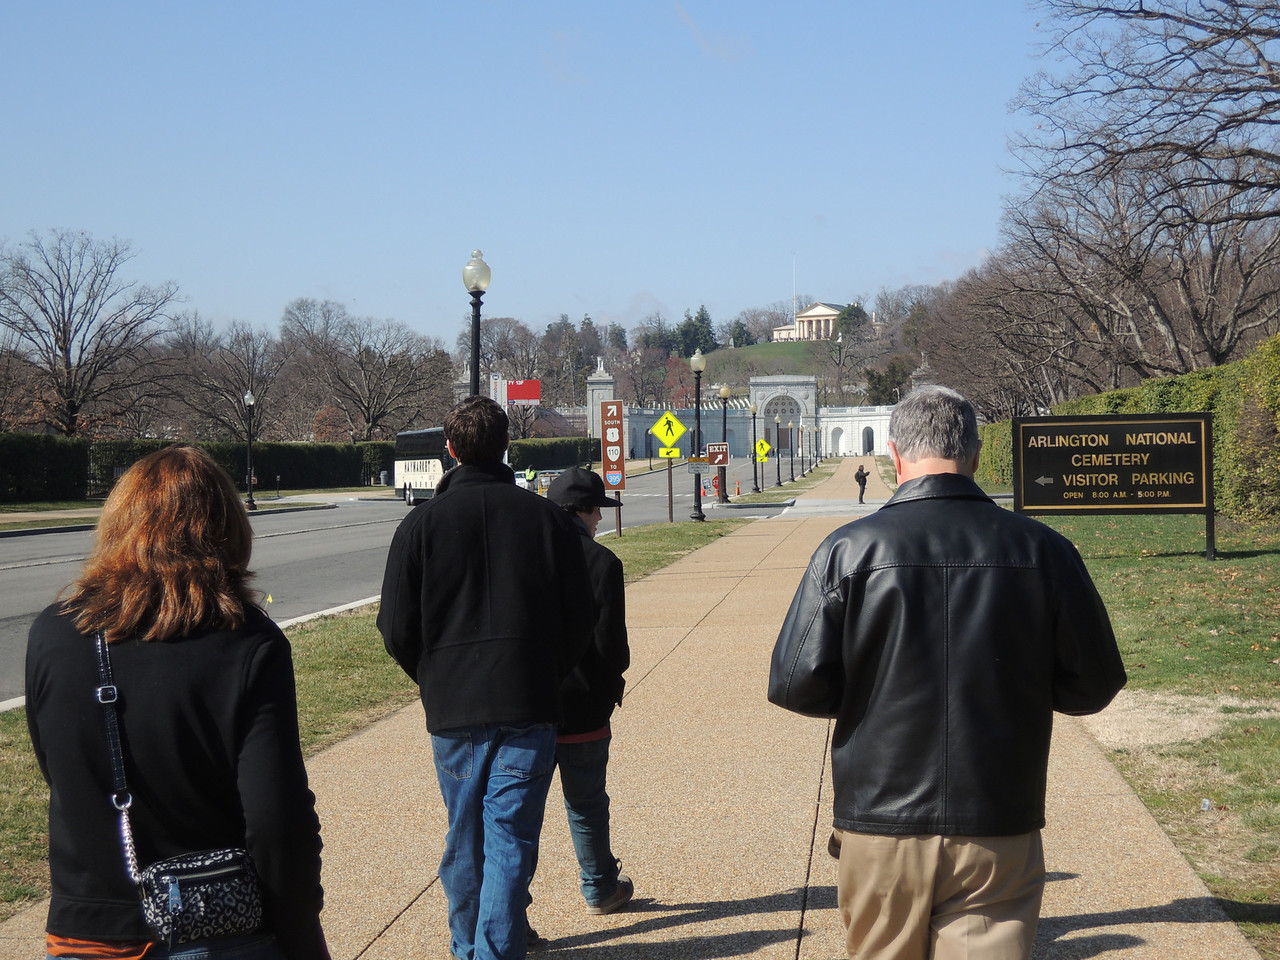 Heading into Arlington National Cemetary.